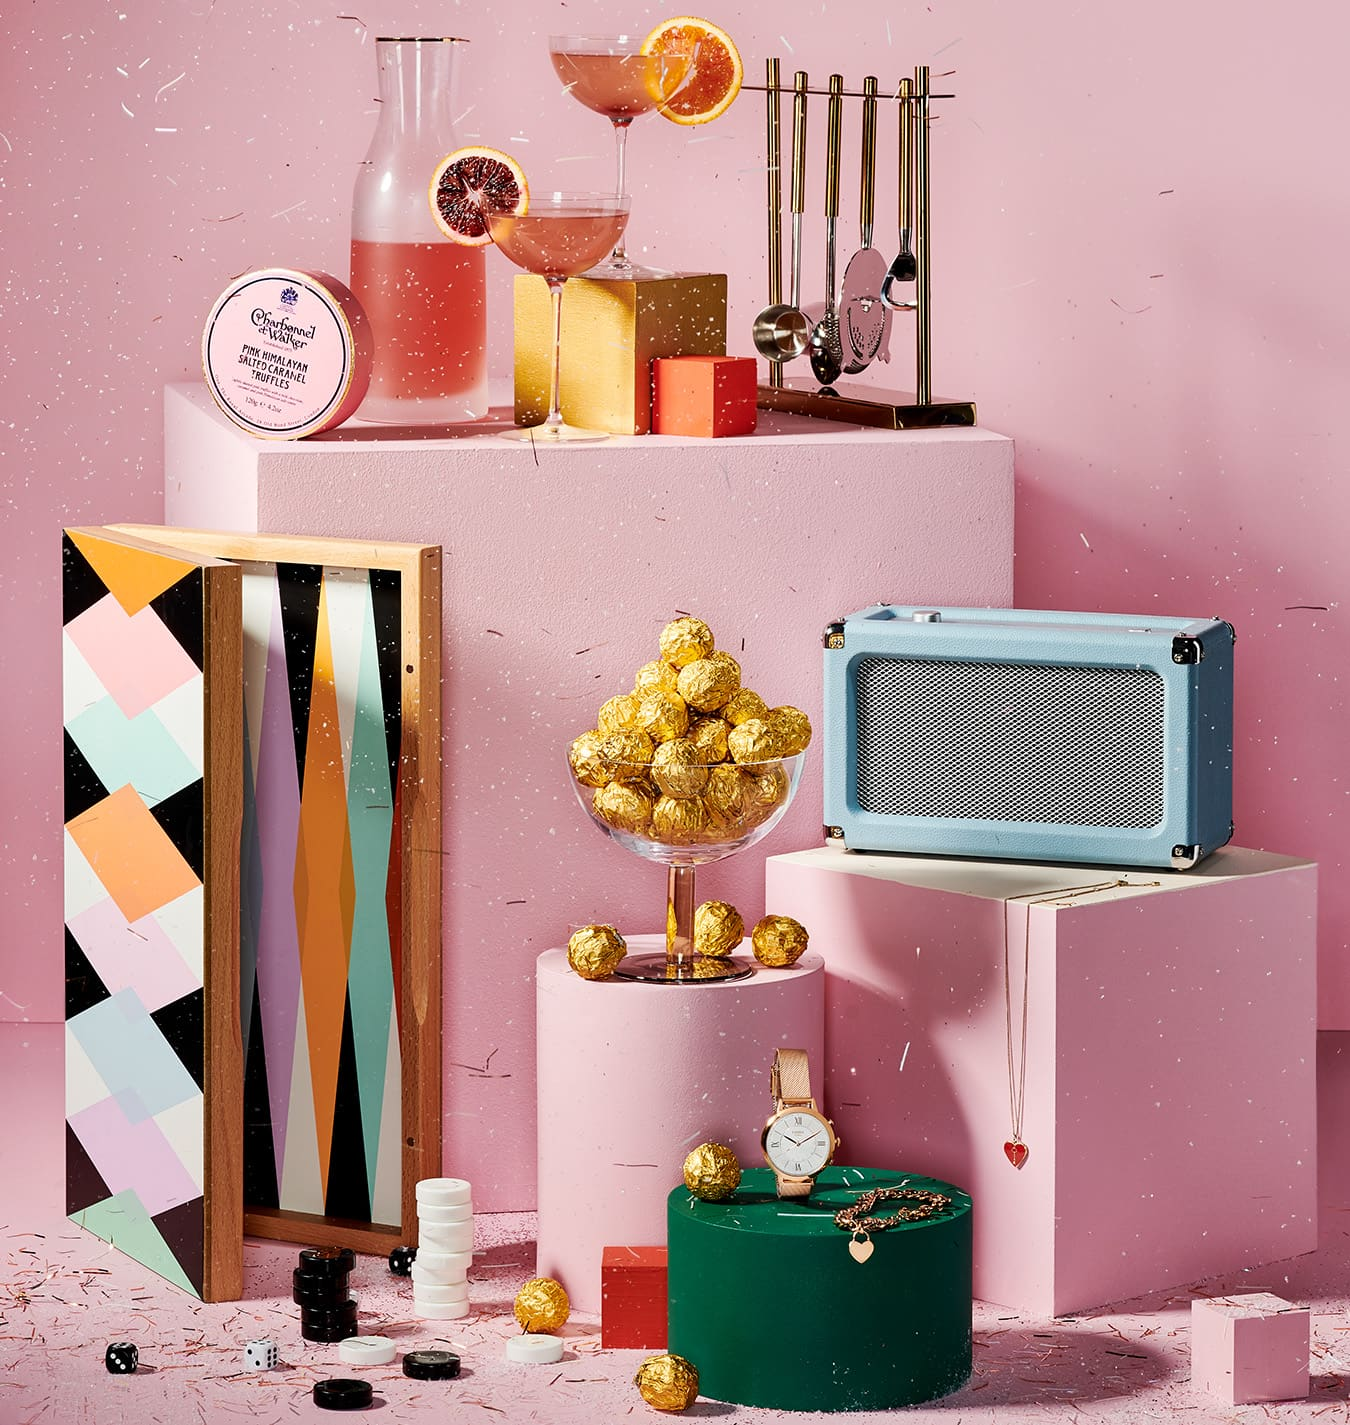 Stylish Gifts For Your Friends With Great Taste